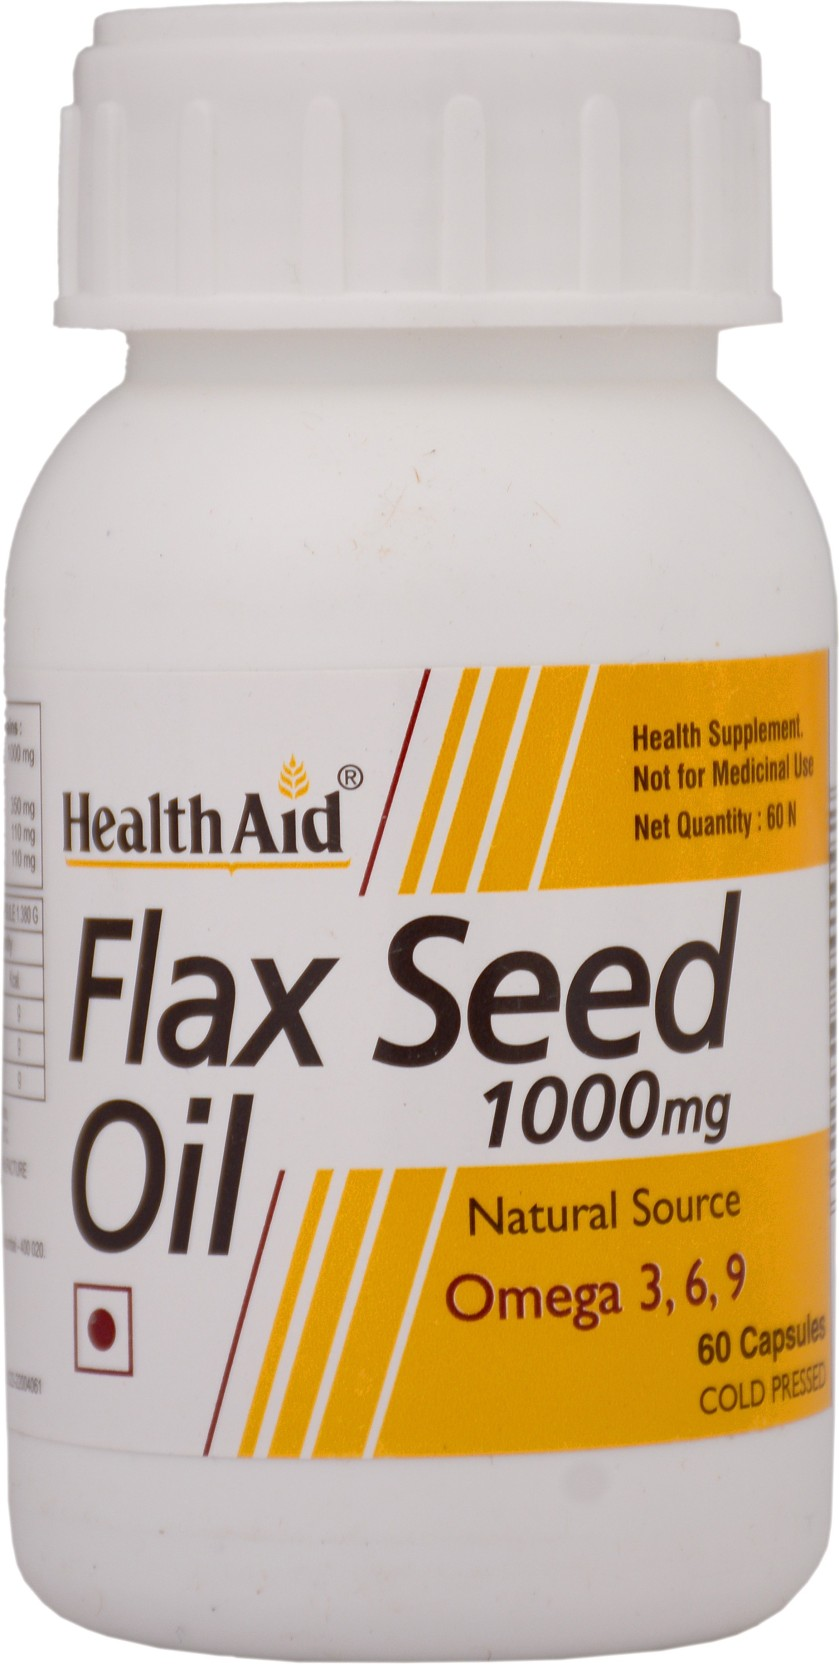 Healthaid Flax Seed Oil 1000mg Omega 3 6 9 Price In India Buy Healthy Care 369 200 Caps Share